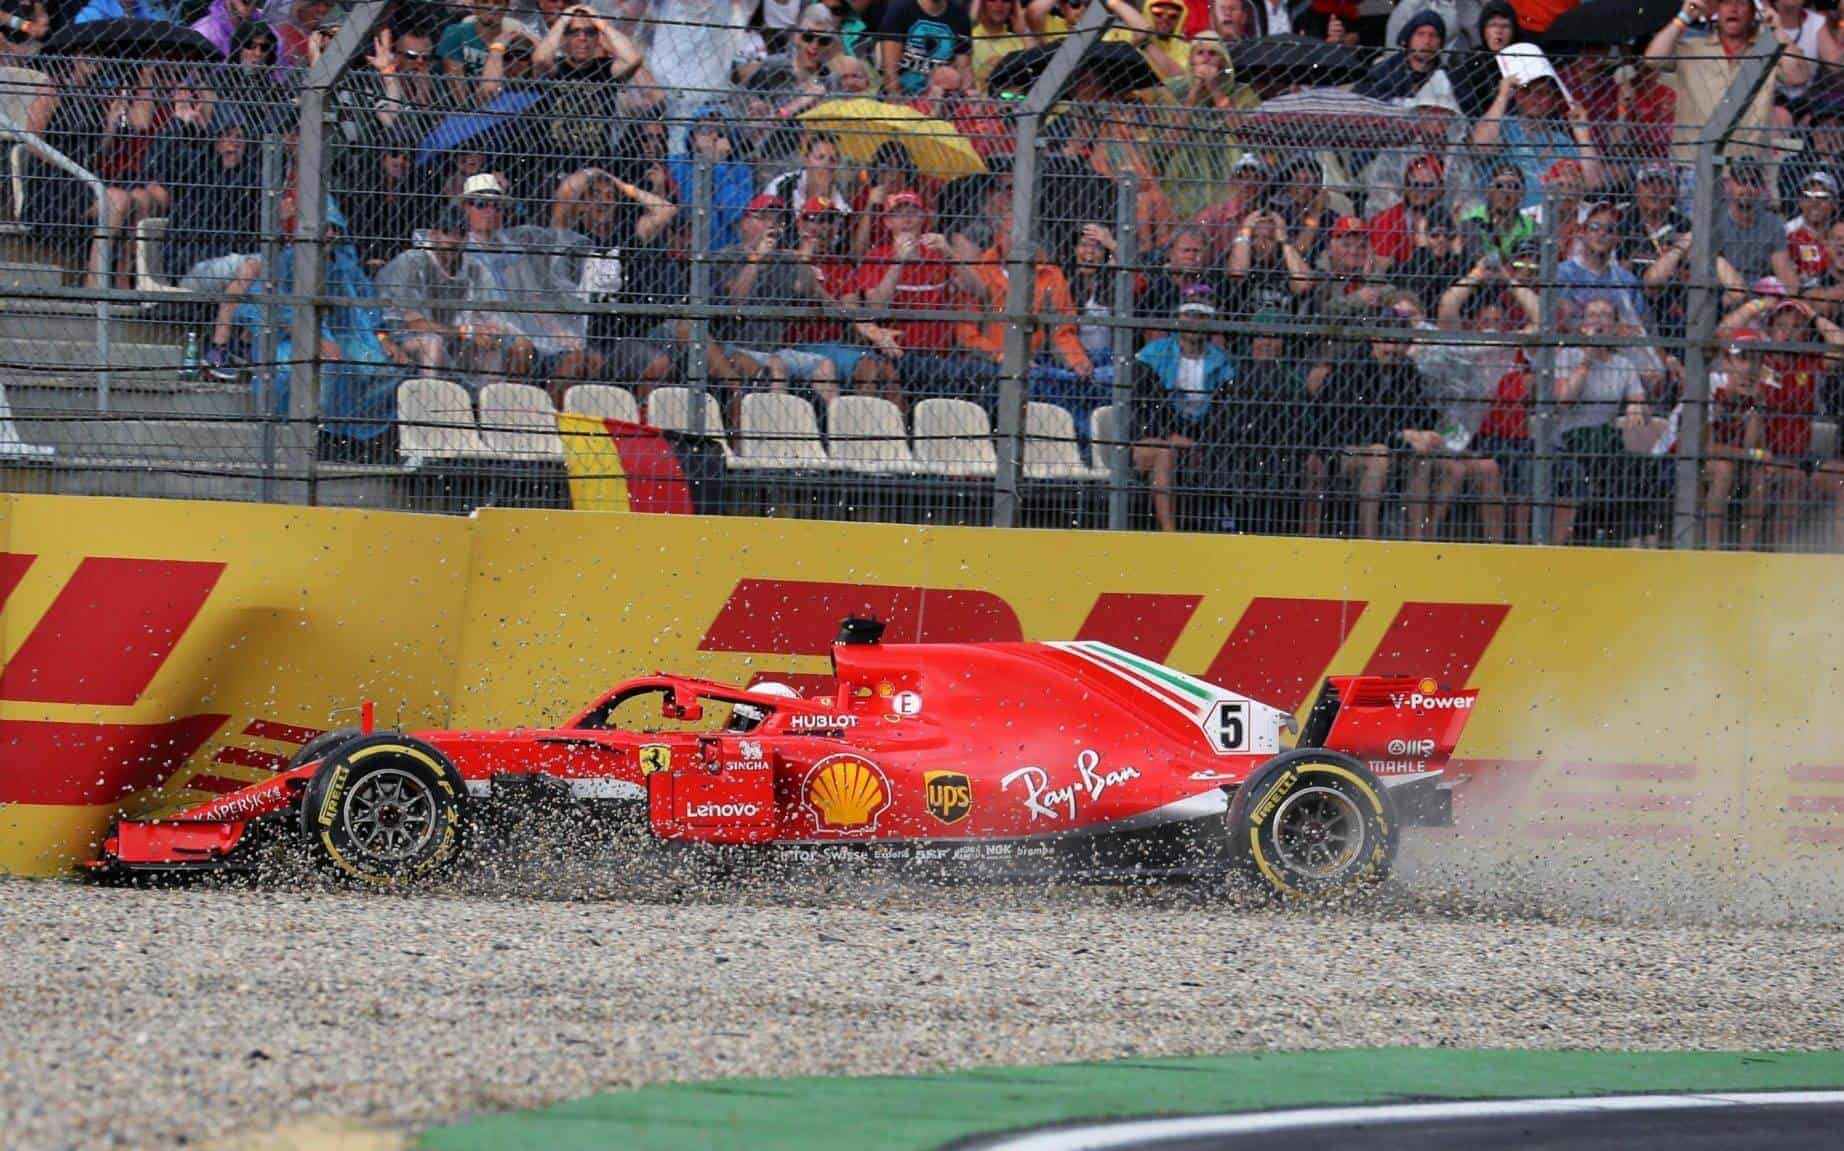 Vettel German GP F1 2018 crash Photo F1